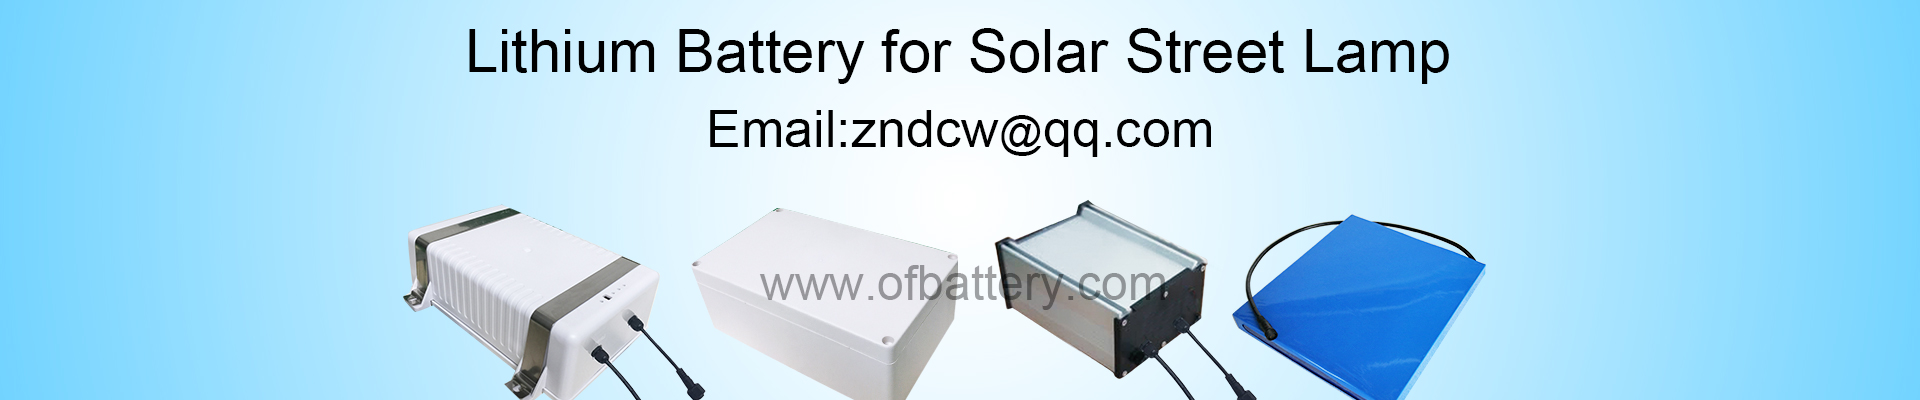 solar light battery